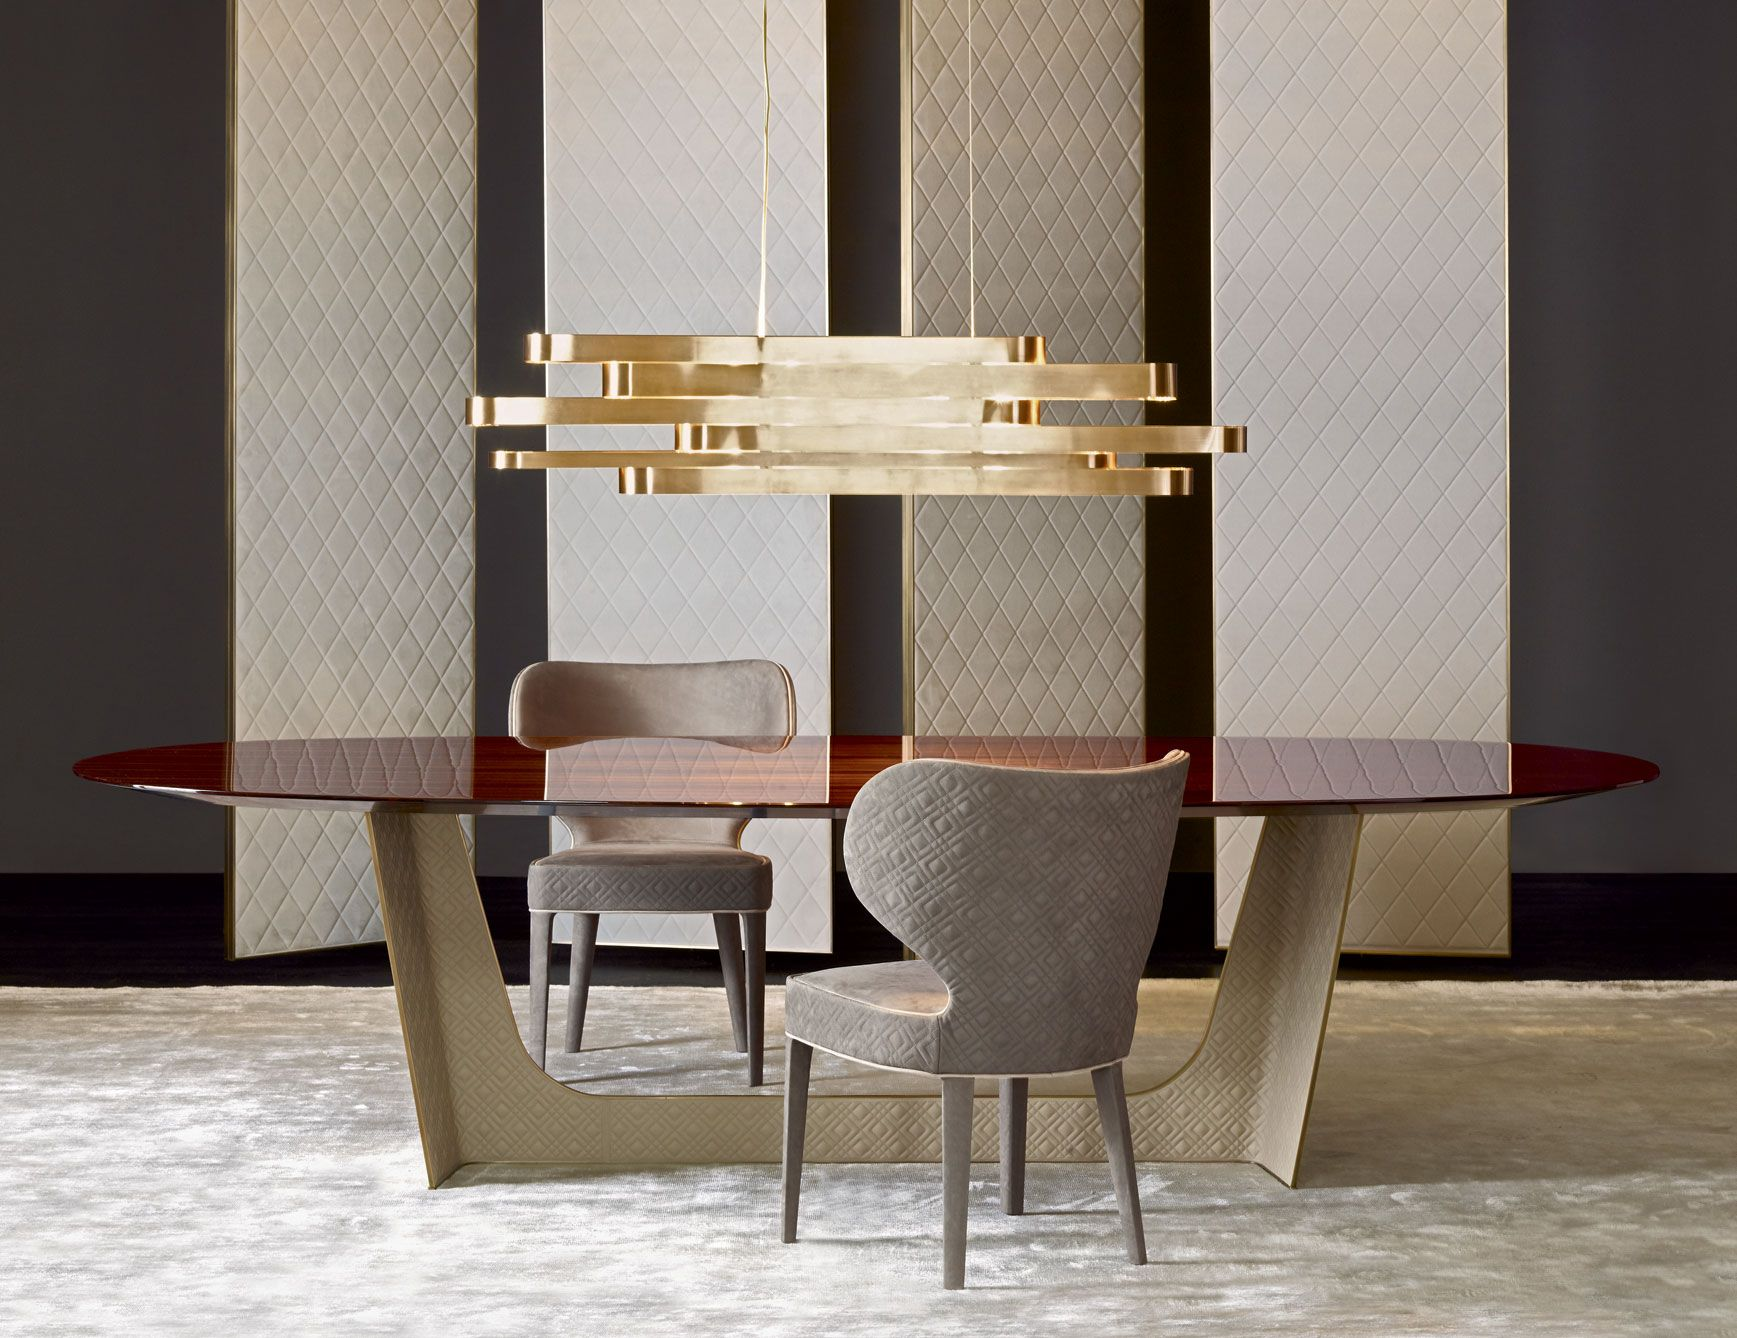 Fabulous Italian Dining Table Available In 2 Colors Ygkwjup In Uwap Interior Chair Design Uwaporg